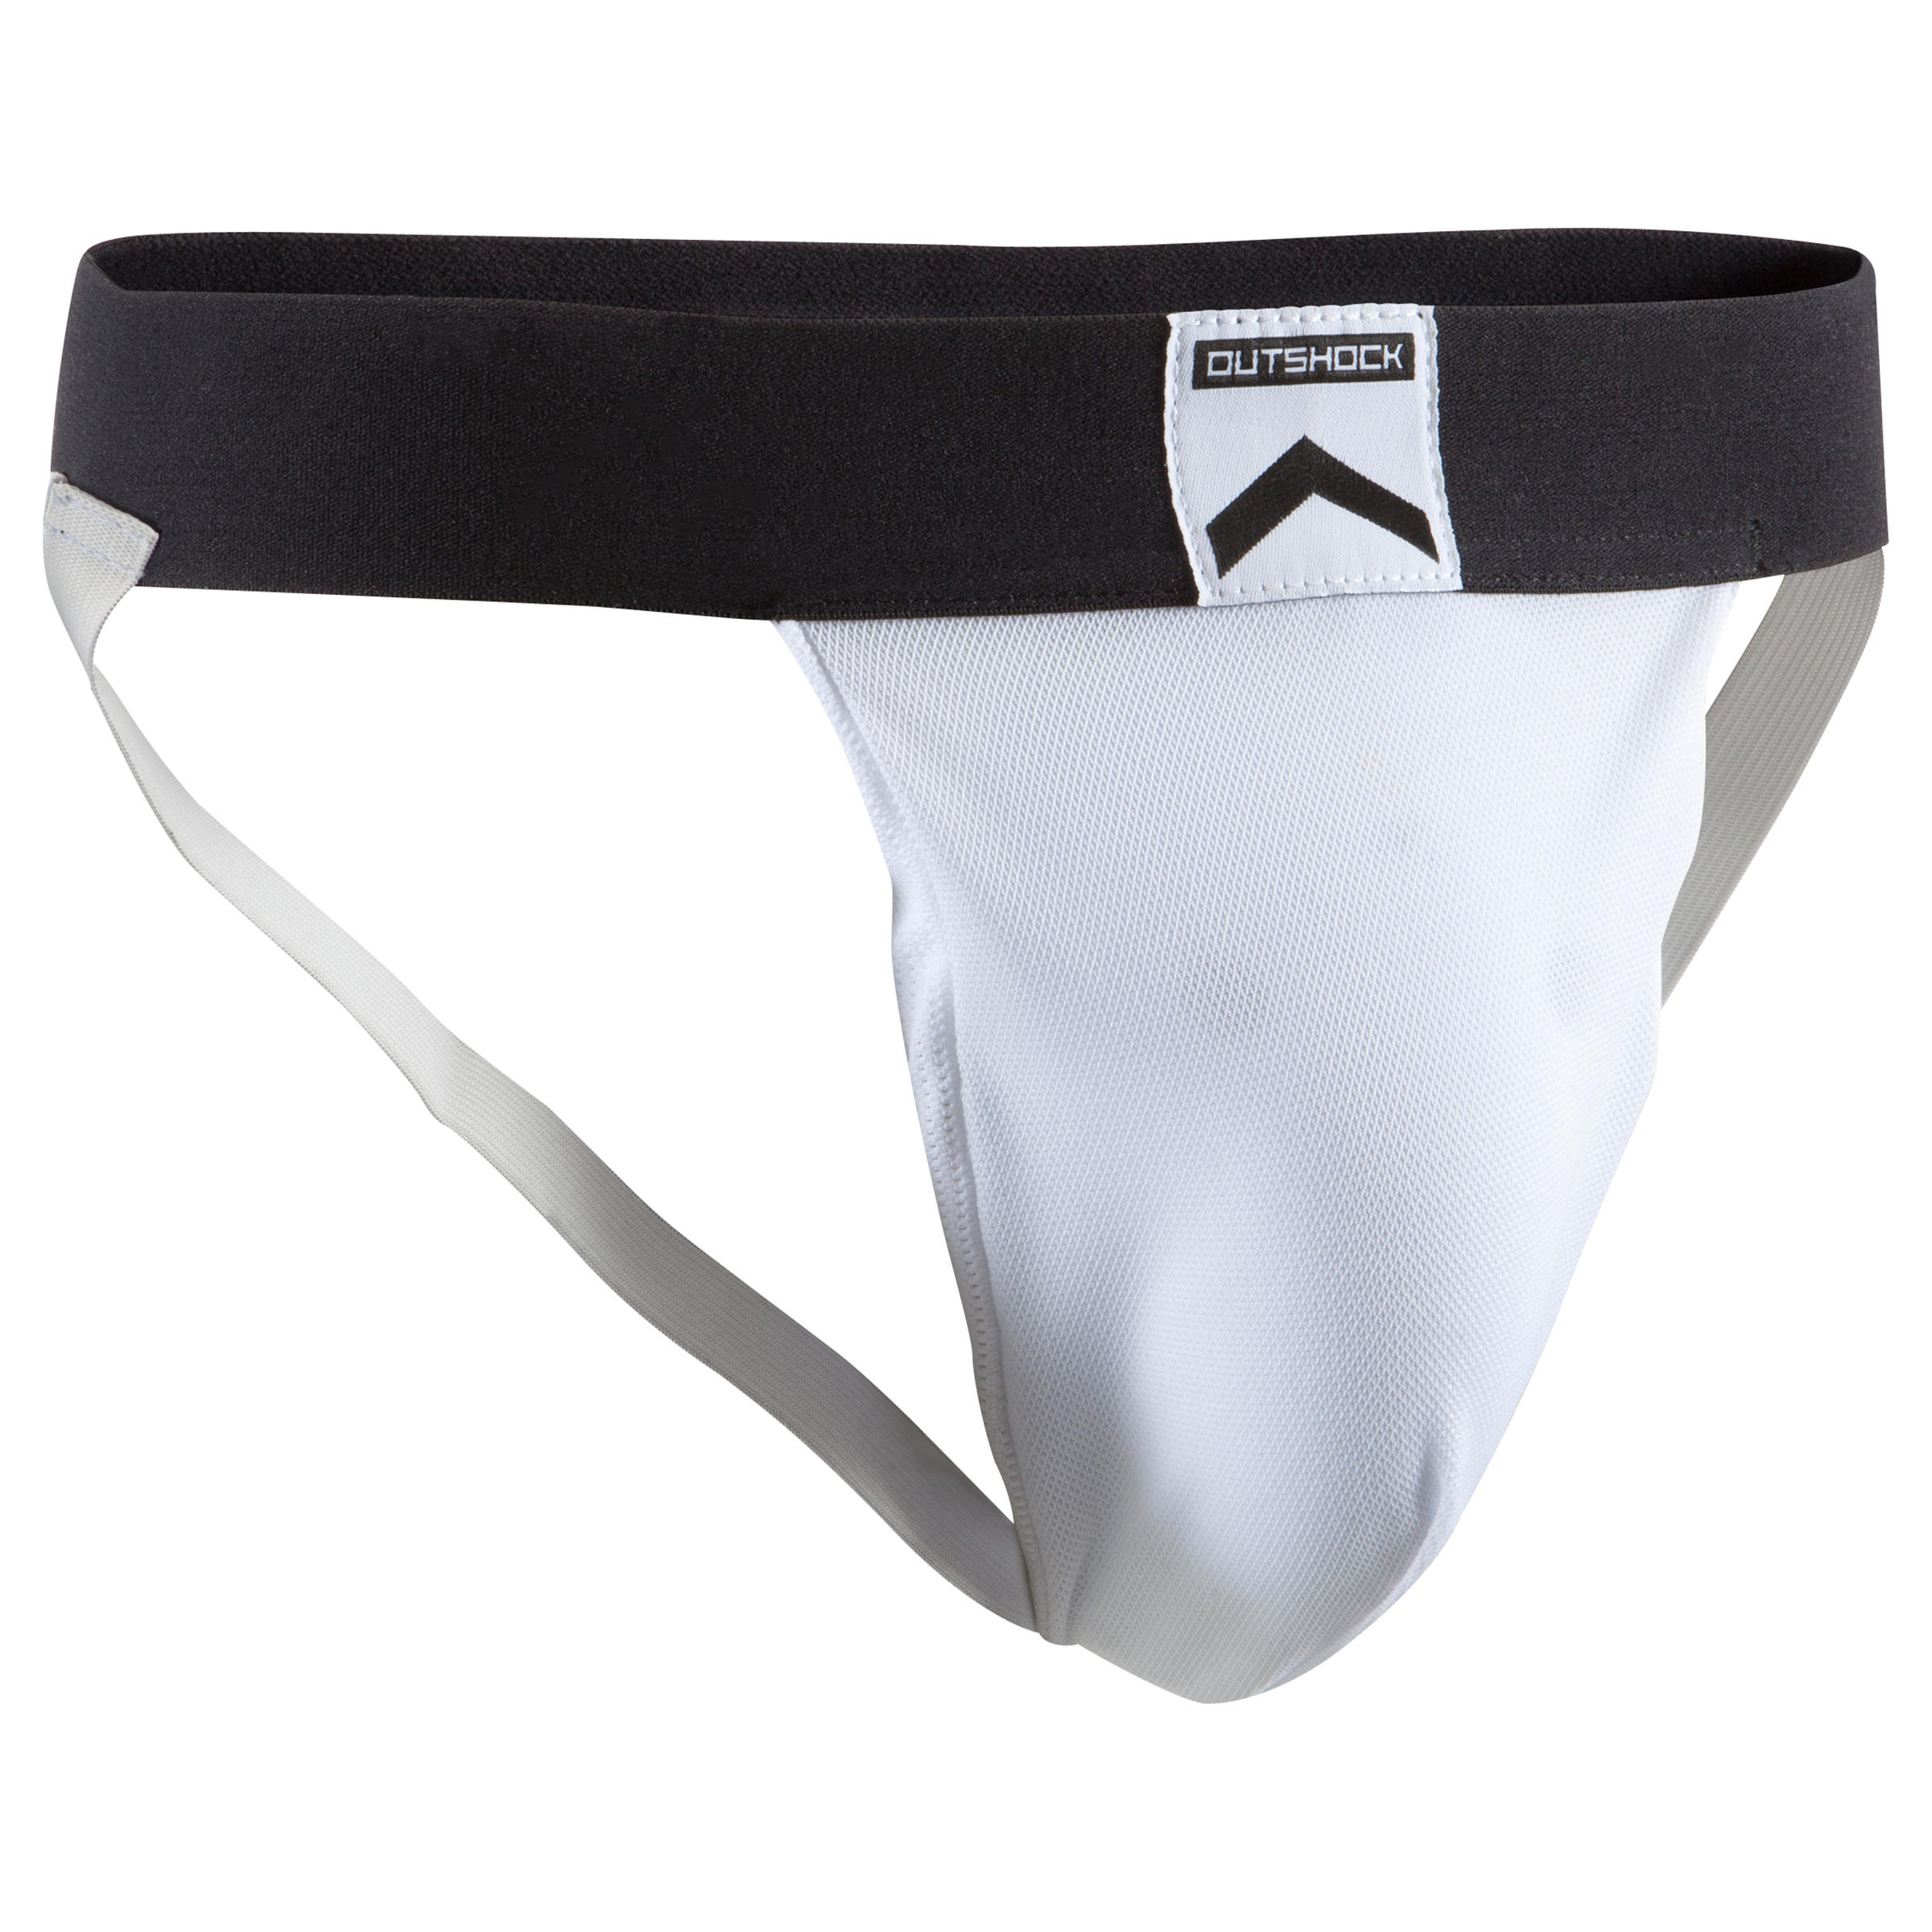 100 Jockstrap with Groin Guard - White